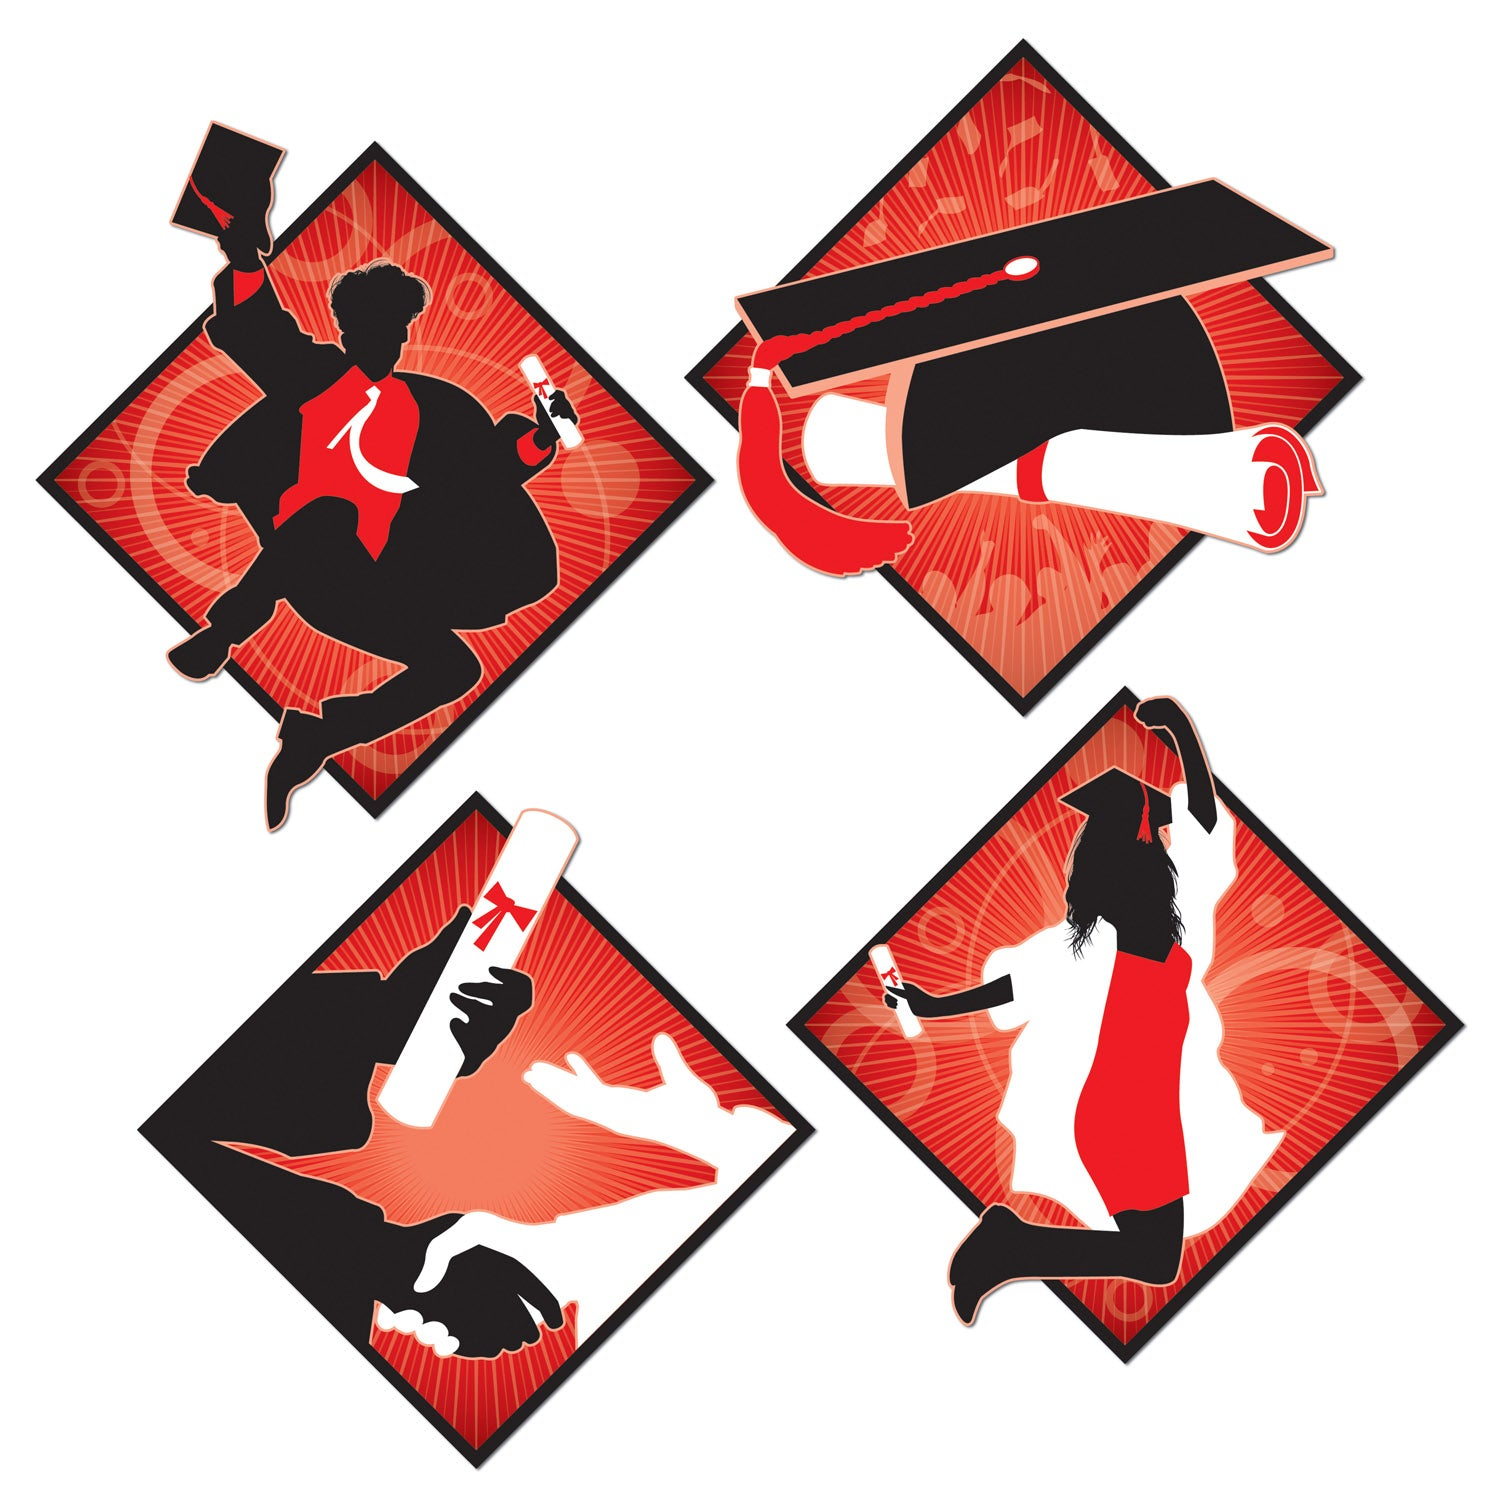 Graduation Cutouts (4/Pkg) by Beistle - Graduation Theme Decorations